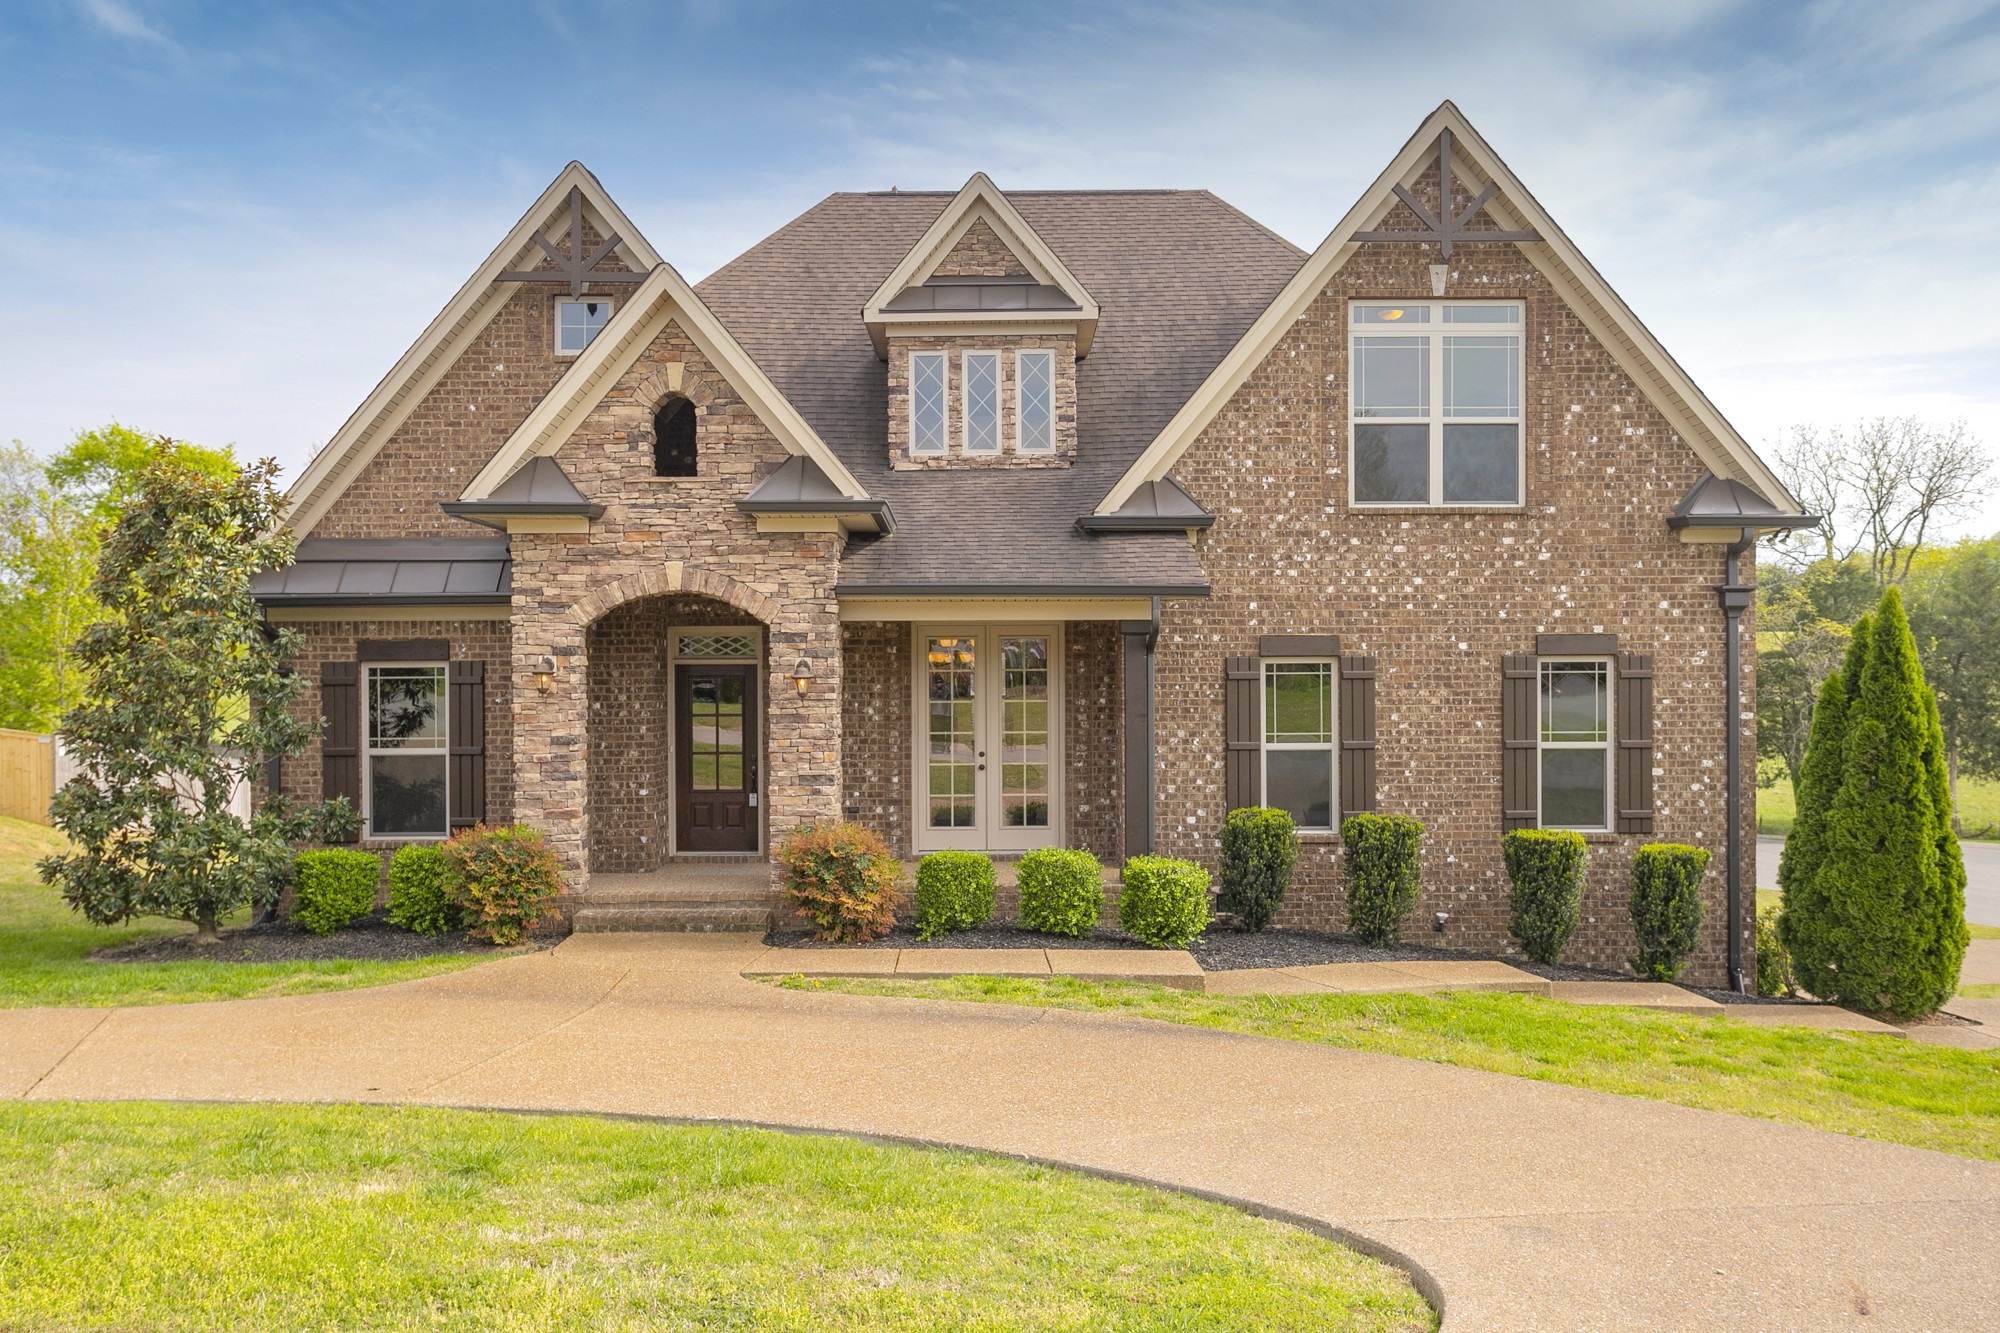 201 Jamies Way Property Photo - Mount Juliet, TN real estate listing